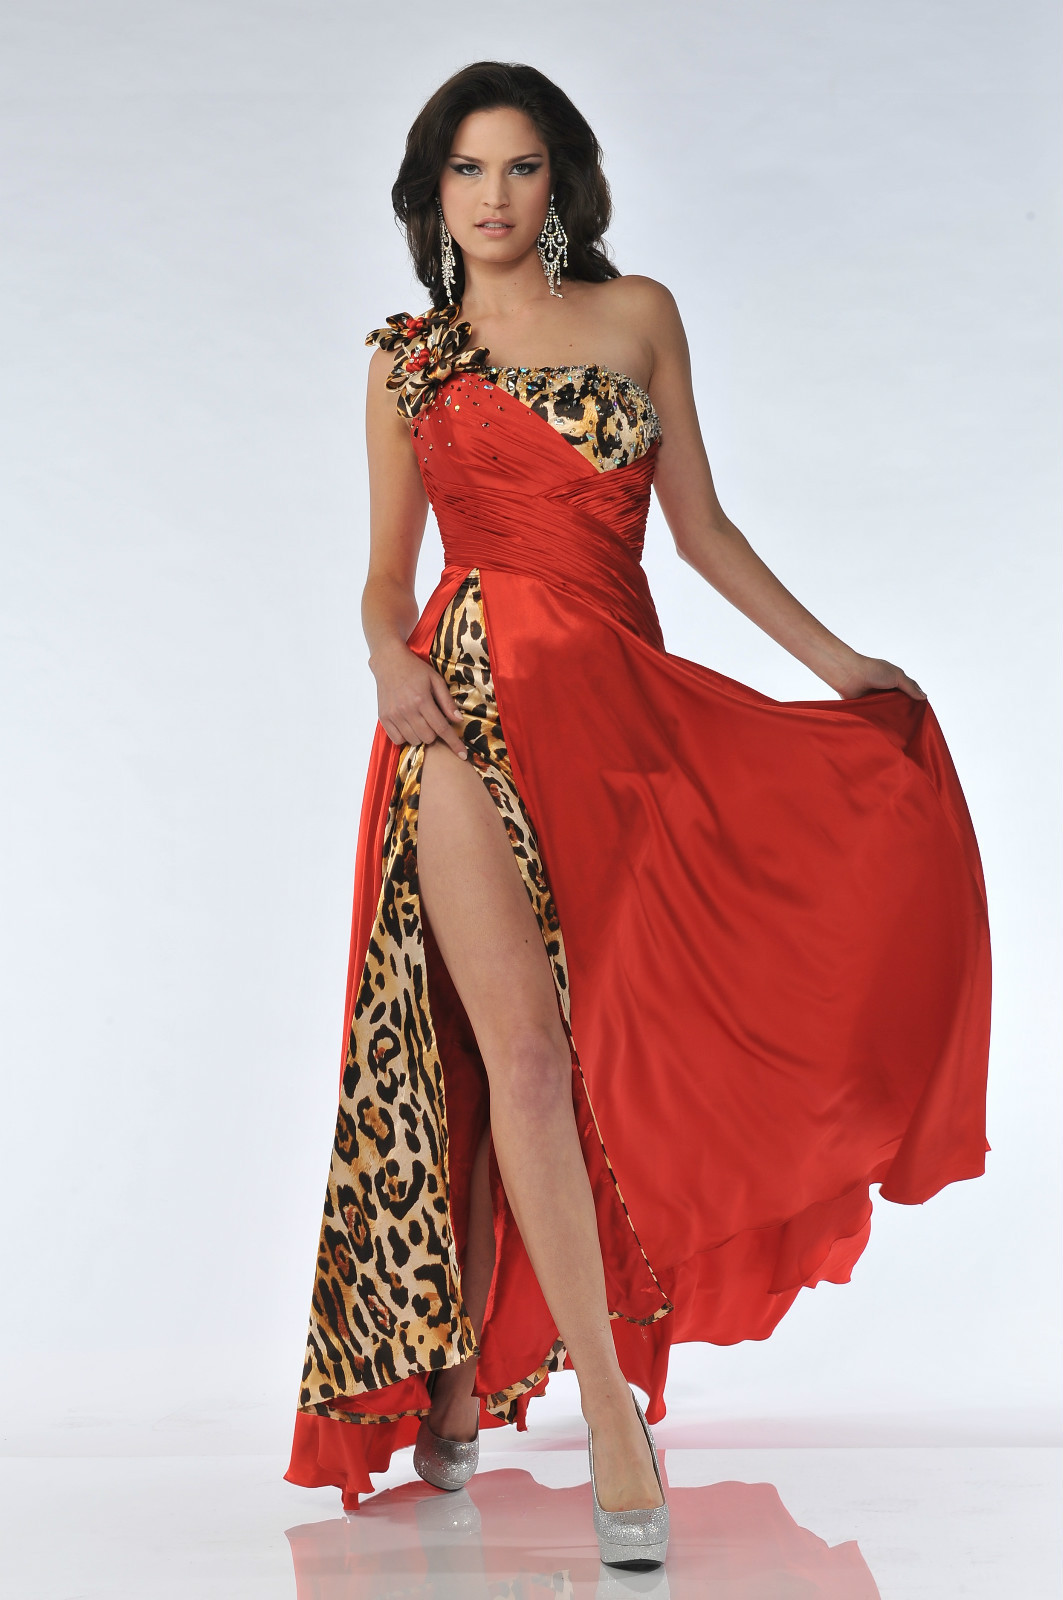 Sexy Red Carpet Formal Prom Pageant Dress Hot Long Gown Special Event Front  Slit  e096d2d48